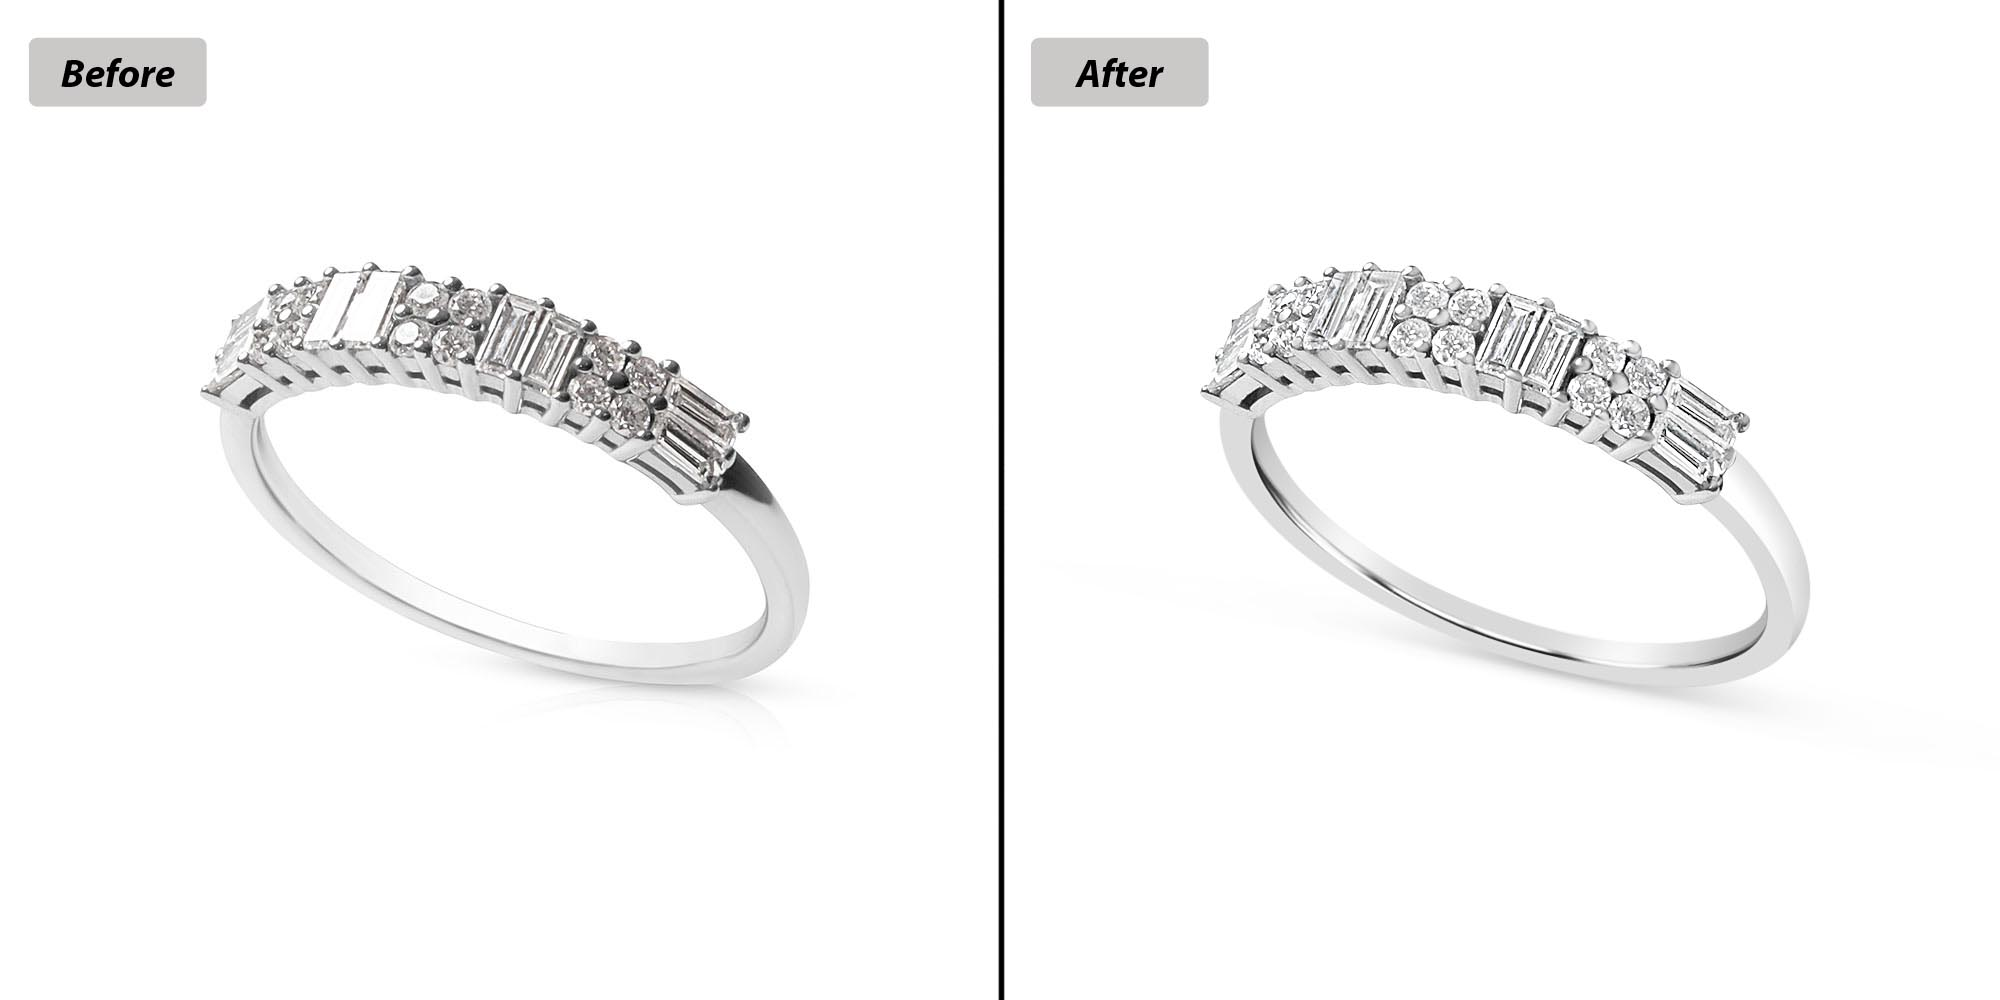 Clipping Charm_Jewellery retouch 0105